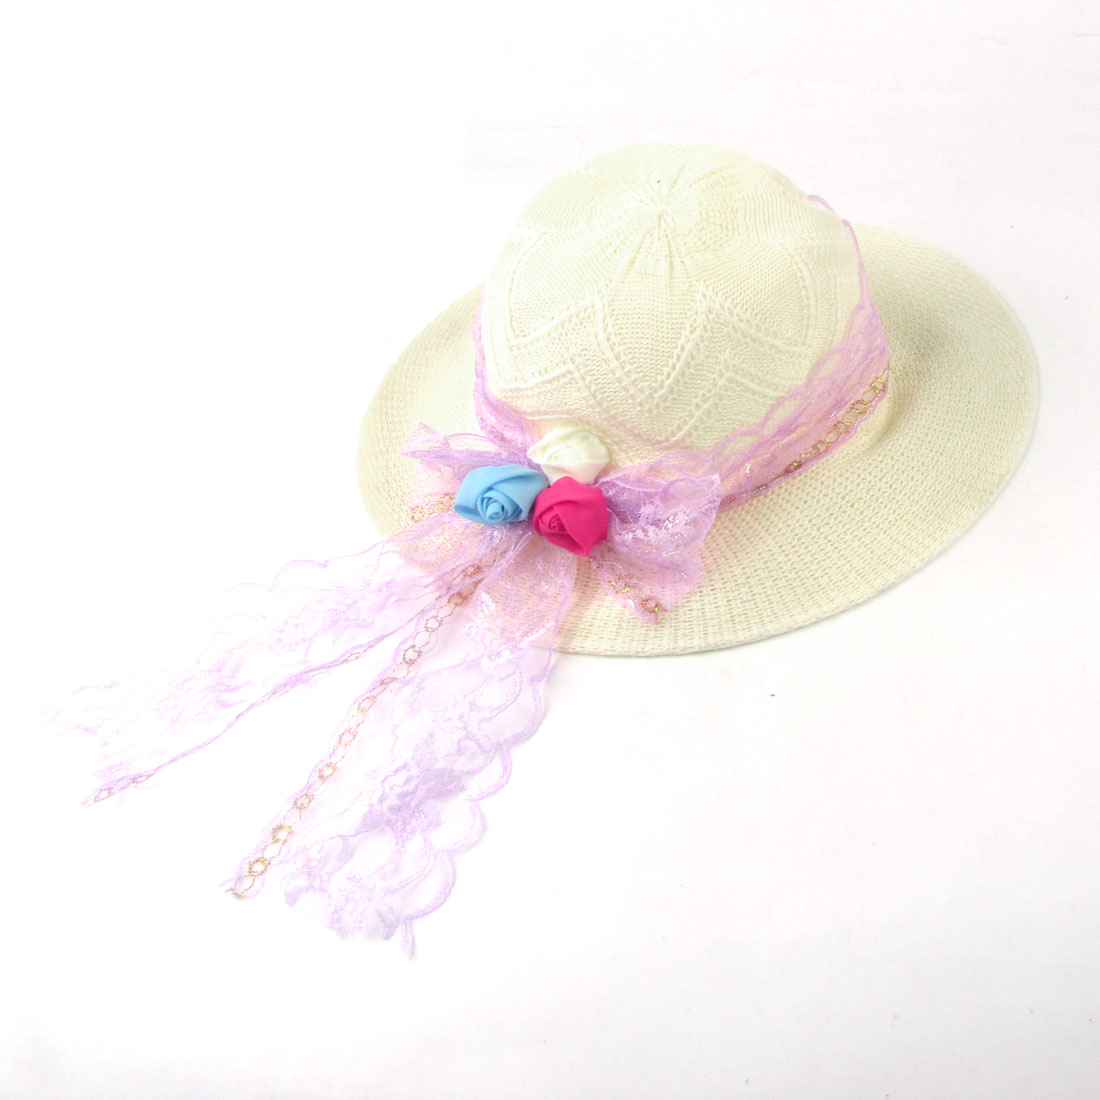 Travel Women Flowers Detailing Lace Straw Beach Sun Hat Light Purpel Off White